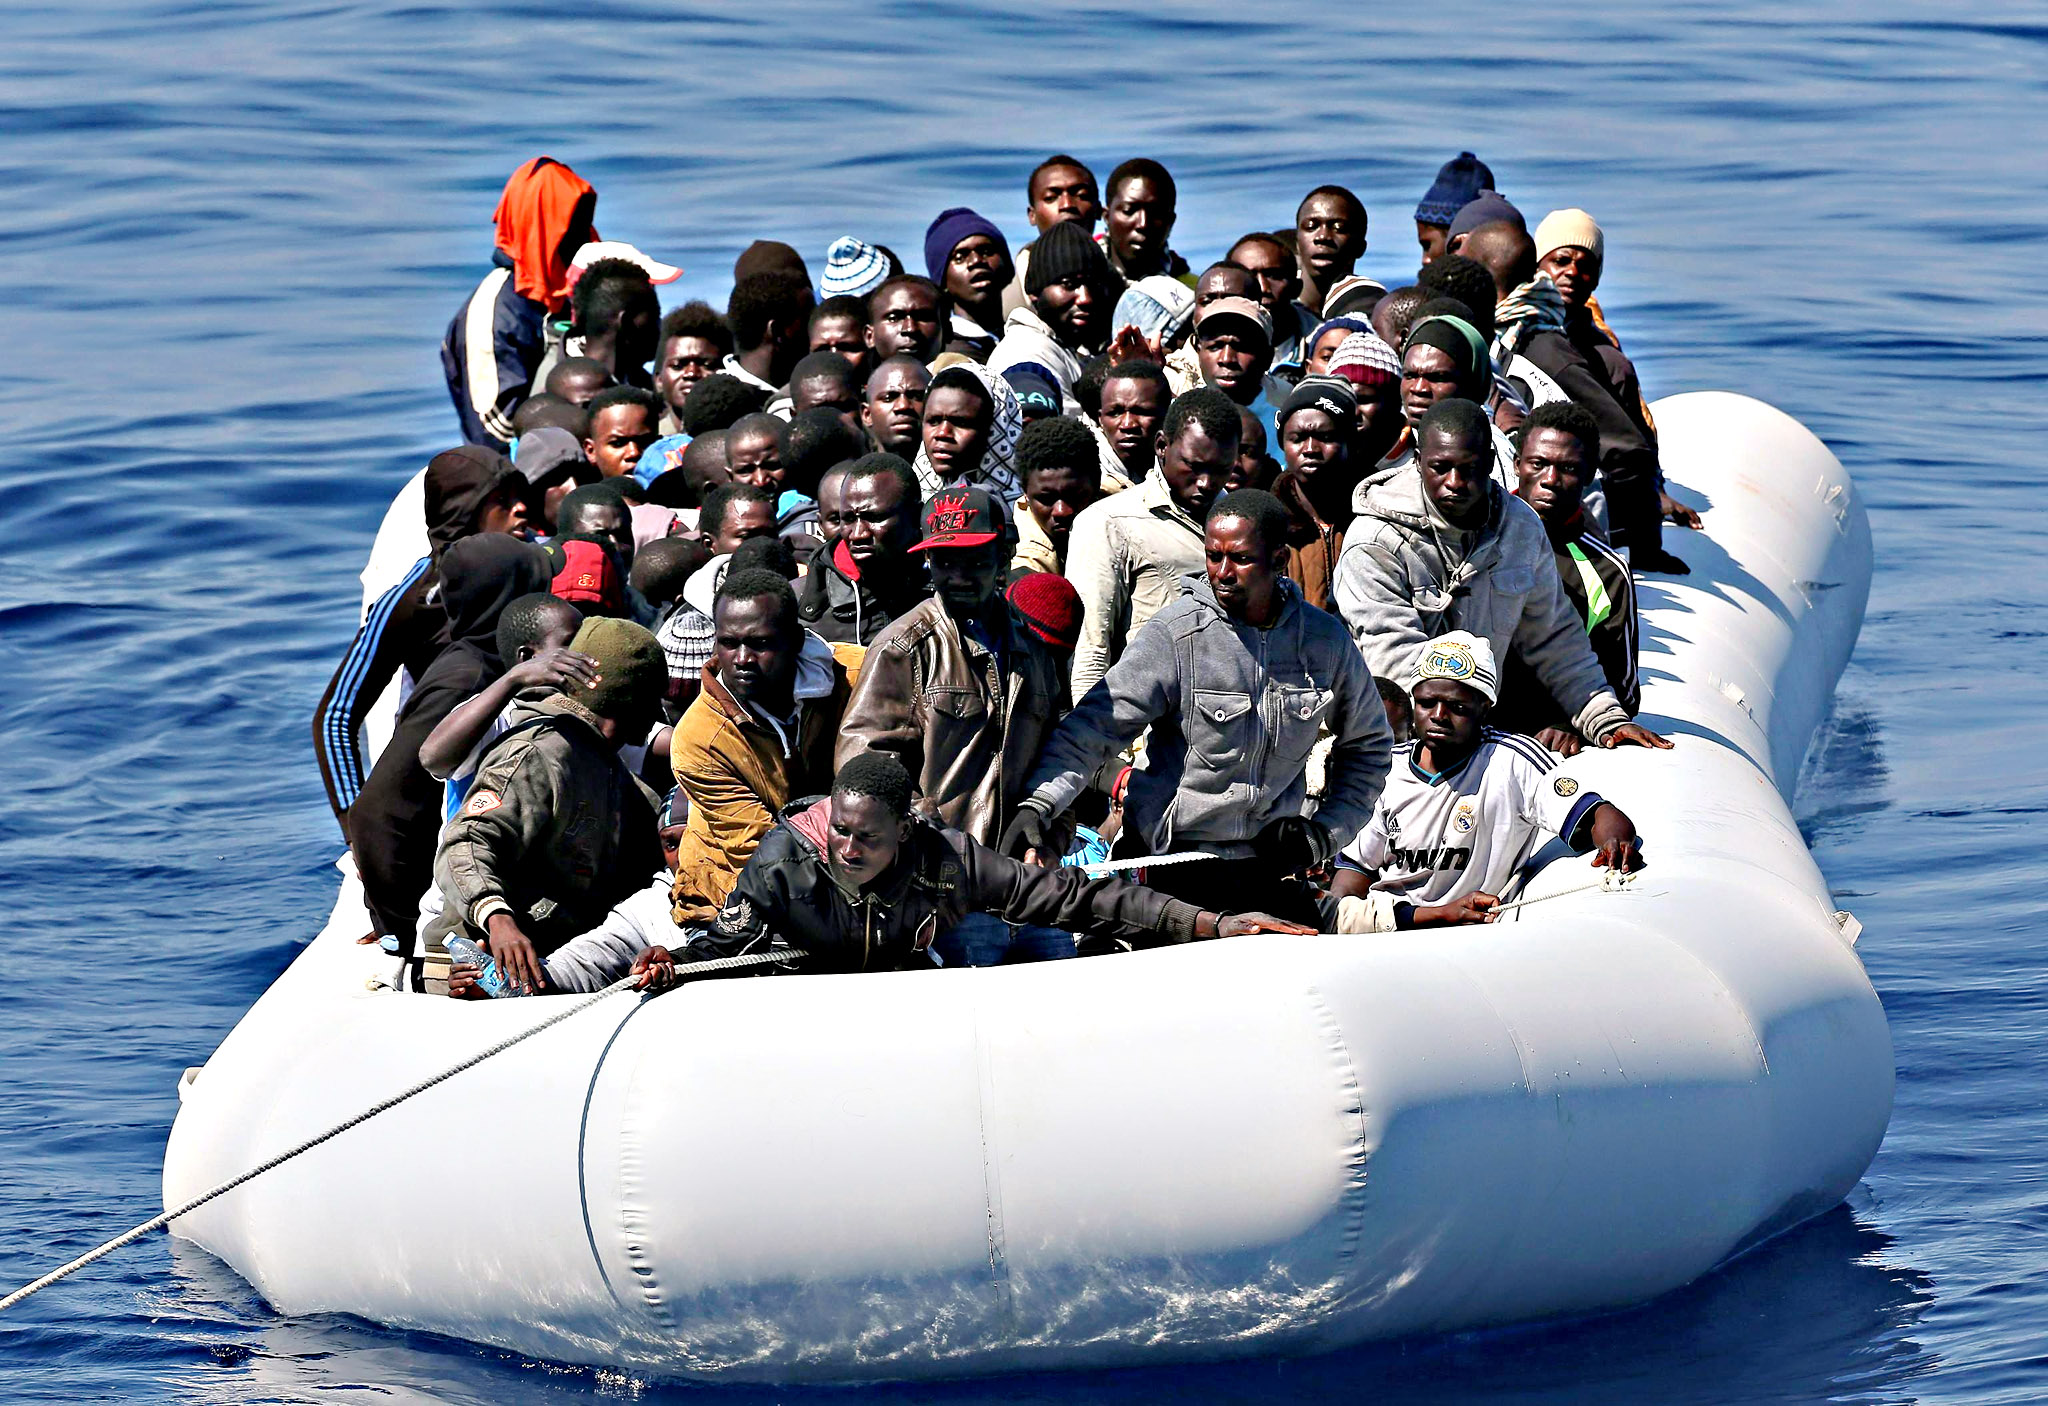 http://blogs.ft.com/photo-diary/files/2015/04/migrants2.jpg